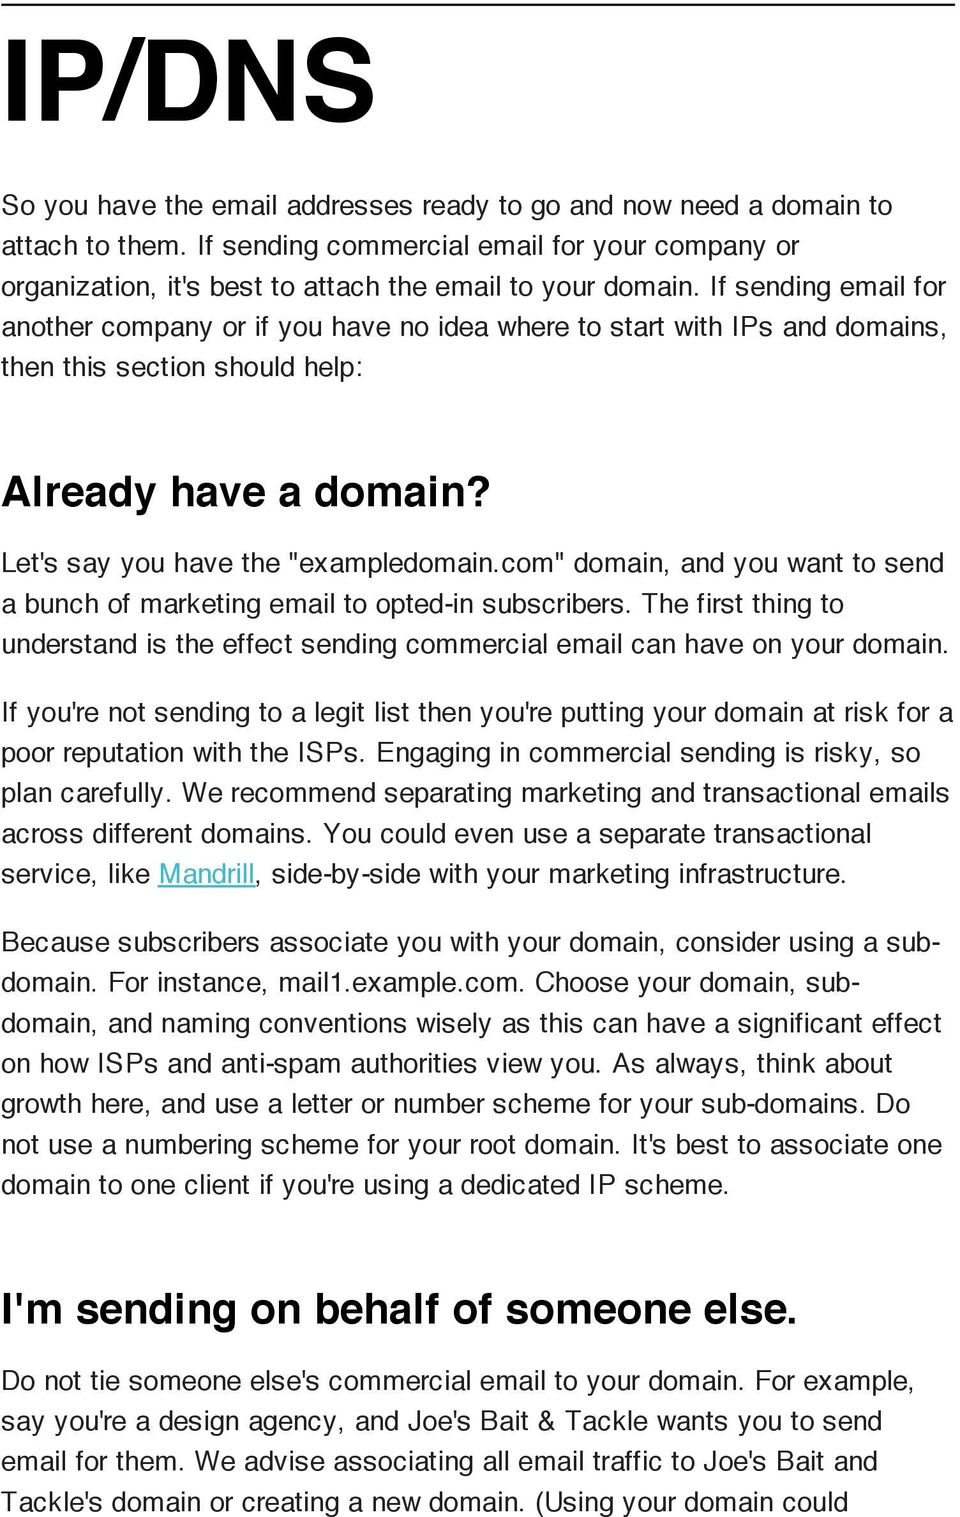 "com"" domain, and you want to send a bunch of marketing email to opted-in subscribers. The first thing to understand is the effect sending commercial email can have on your domain."